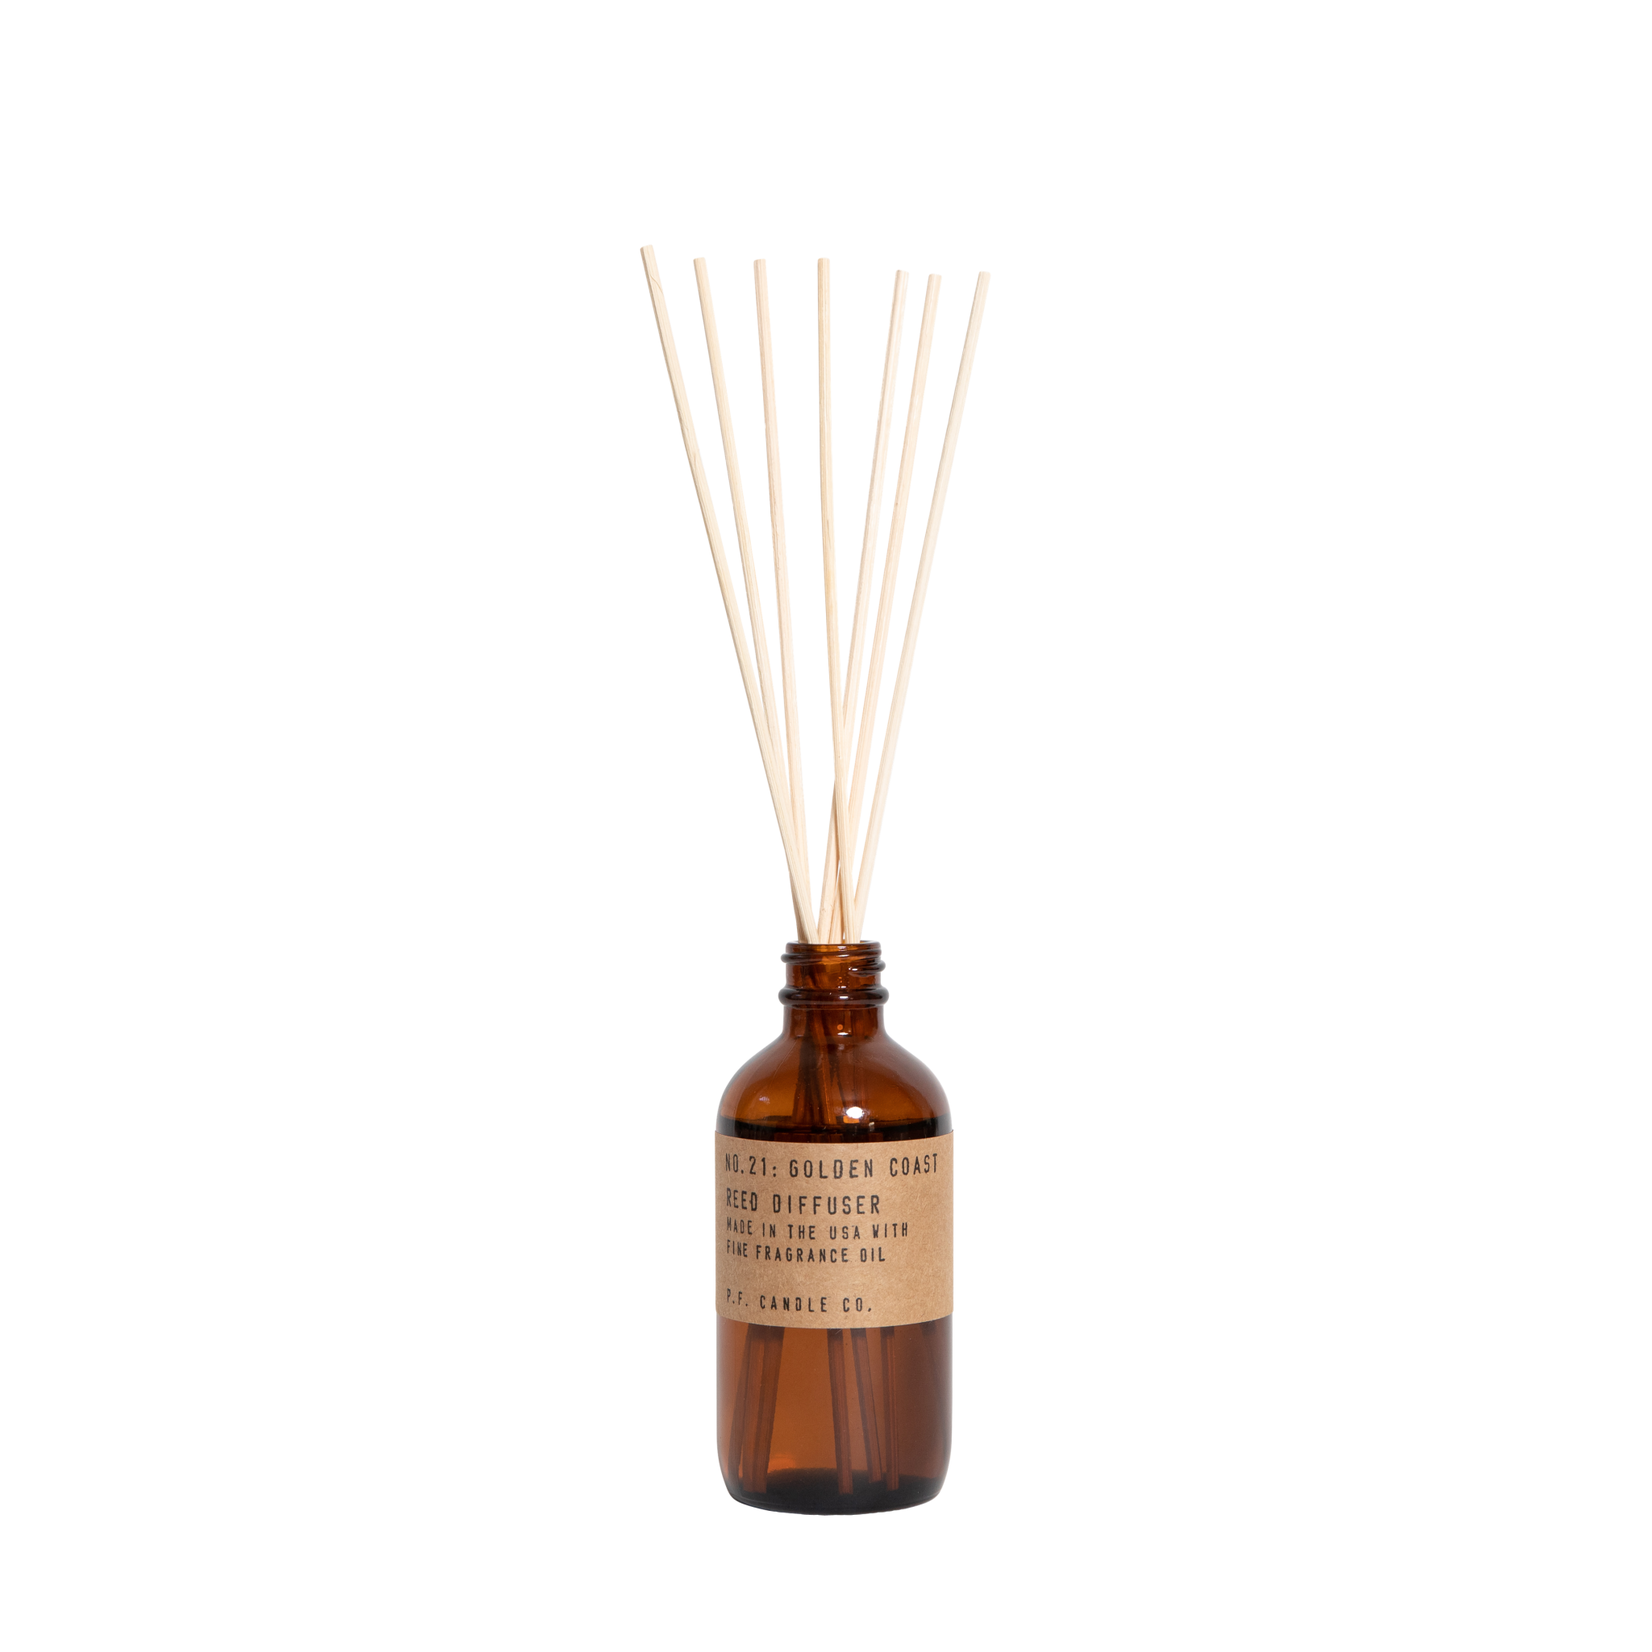 P.F. Candle Co. P.F. Candle Diffuser Golden Coast